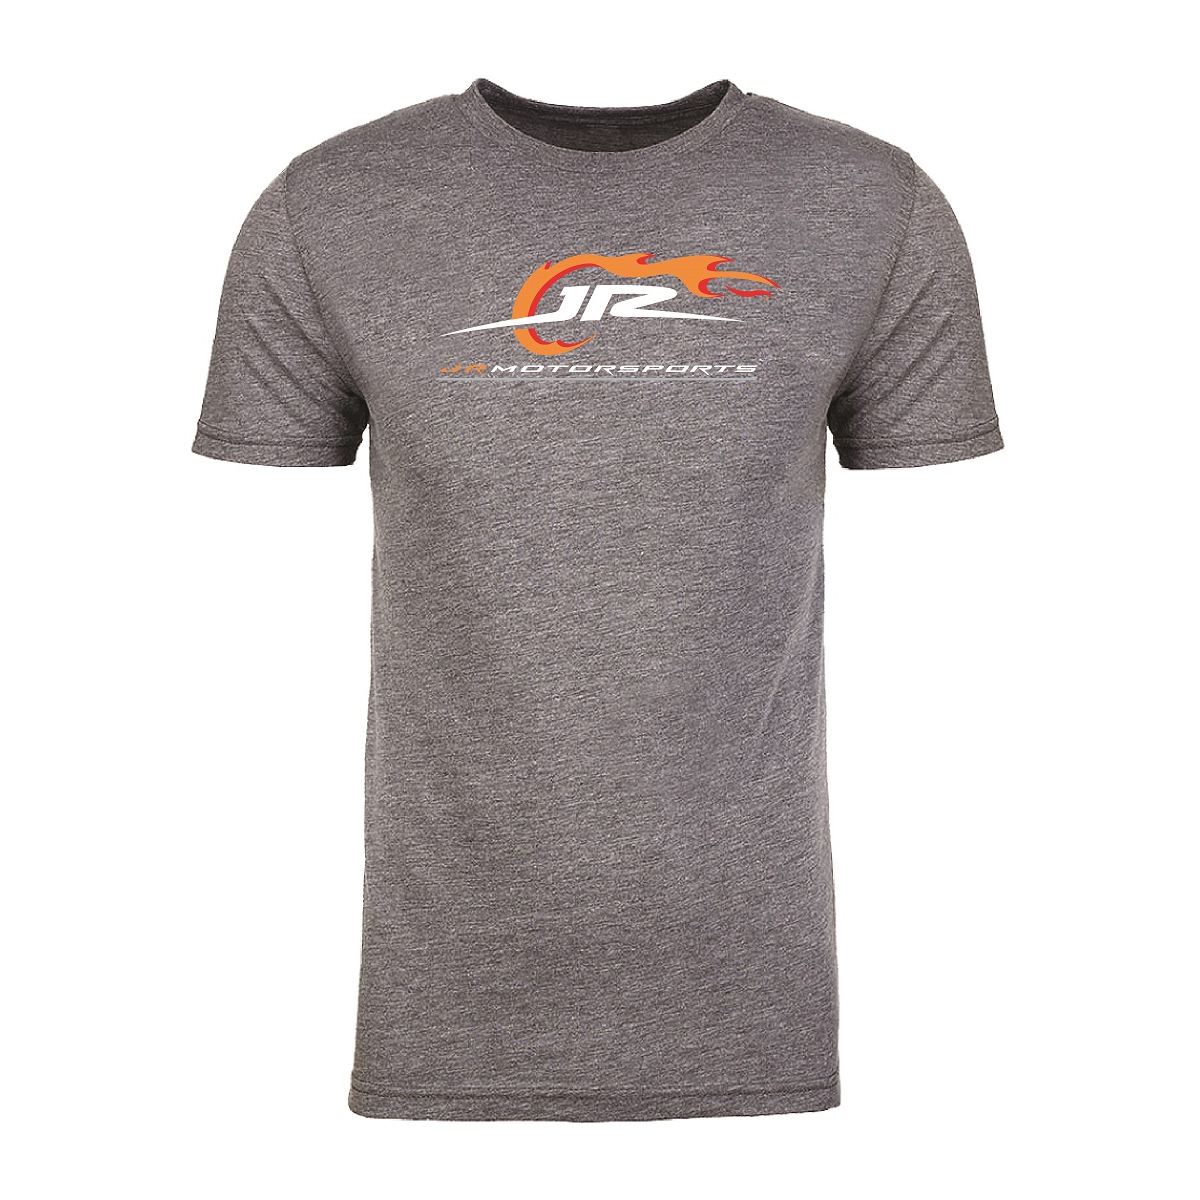 2019 Jr Motorsports Heather Grey T-shirt